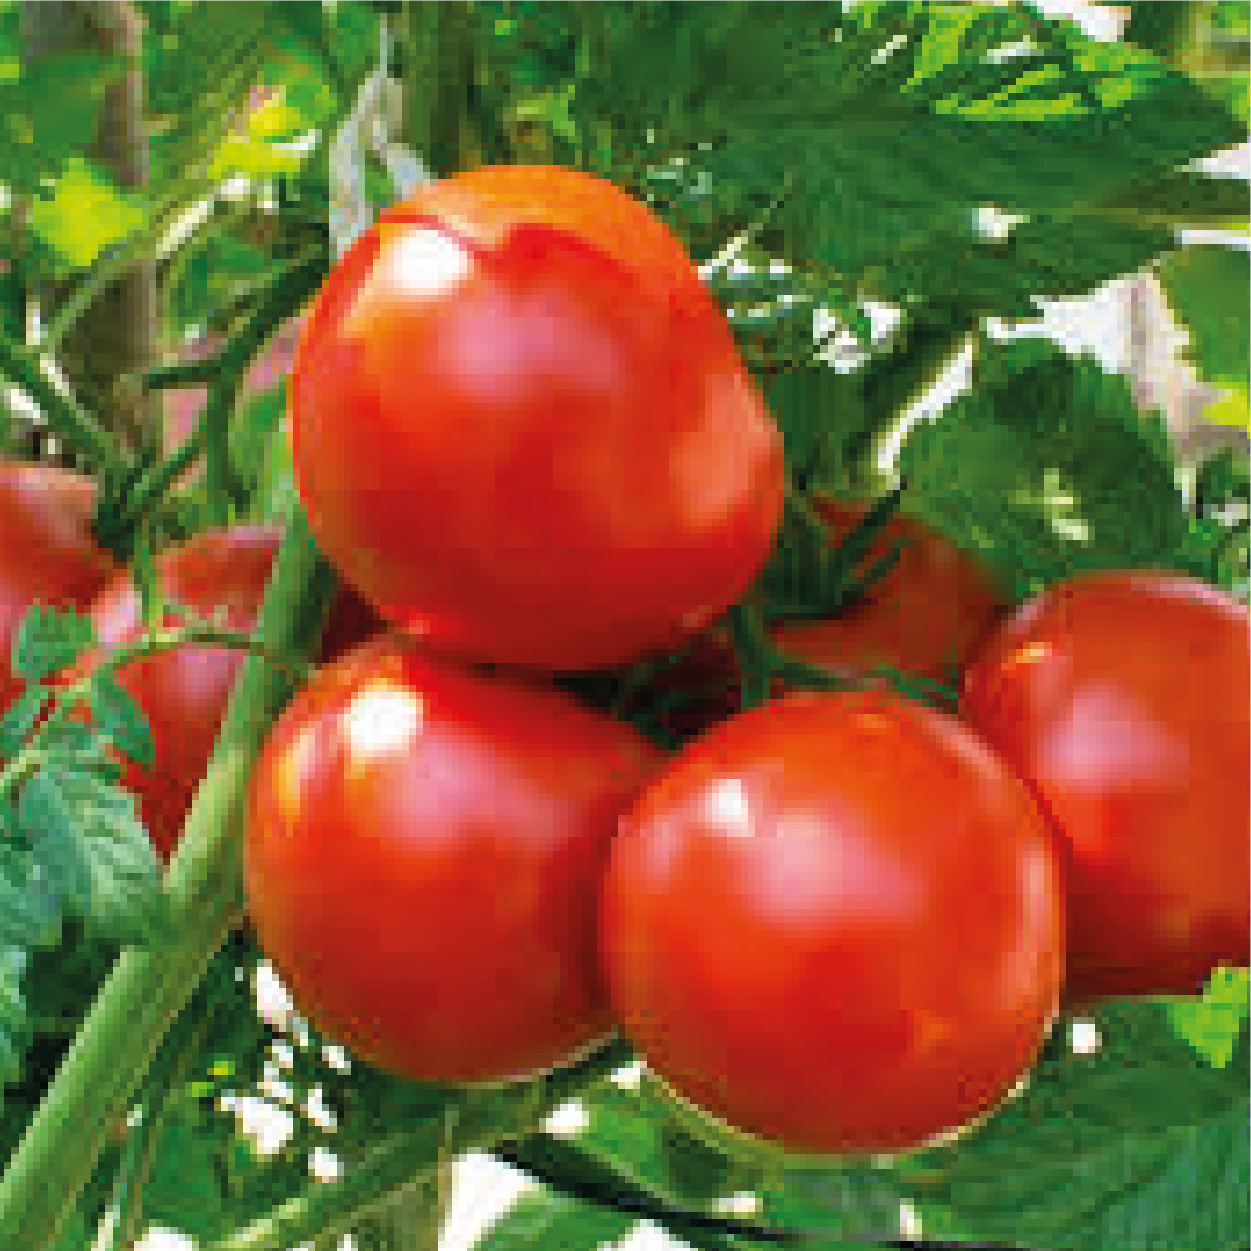 Tomatoes on the vine - Cherries & Carrot Tops